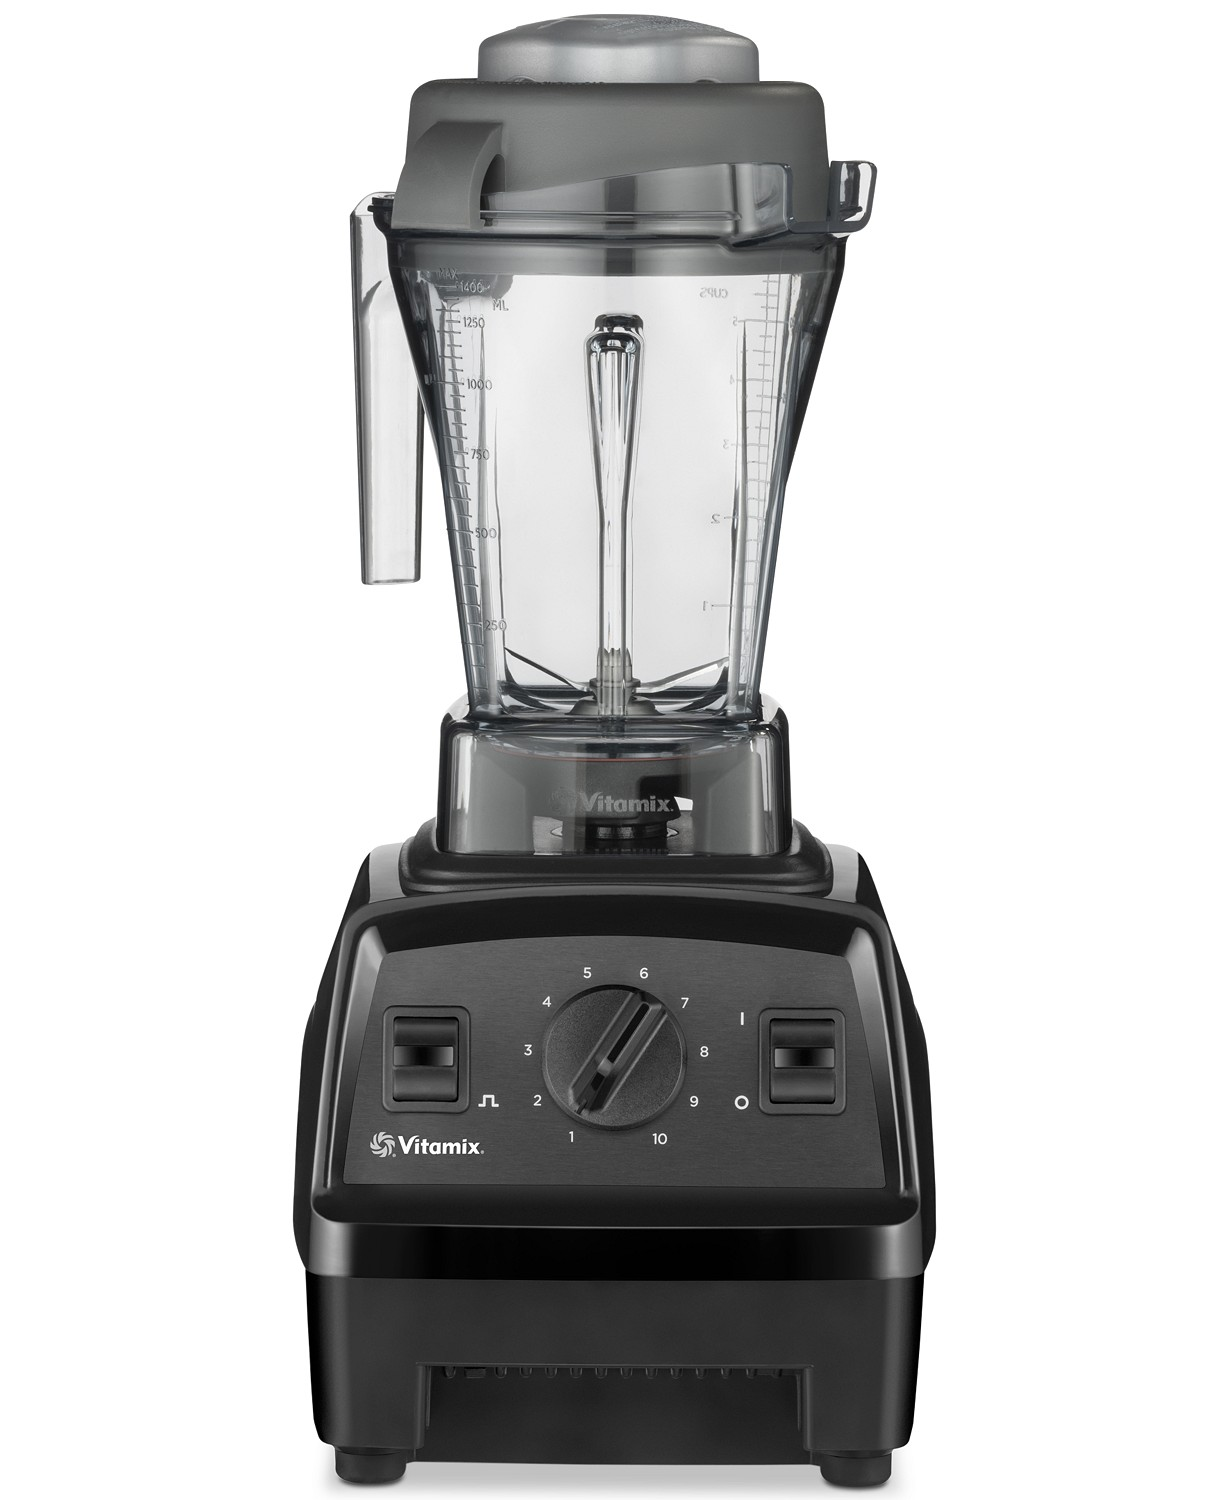 vitamix.jpeg